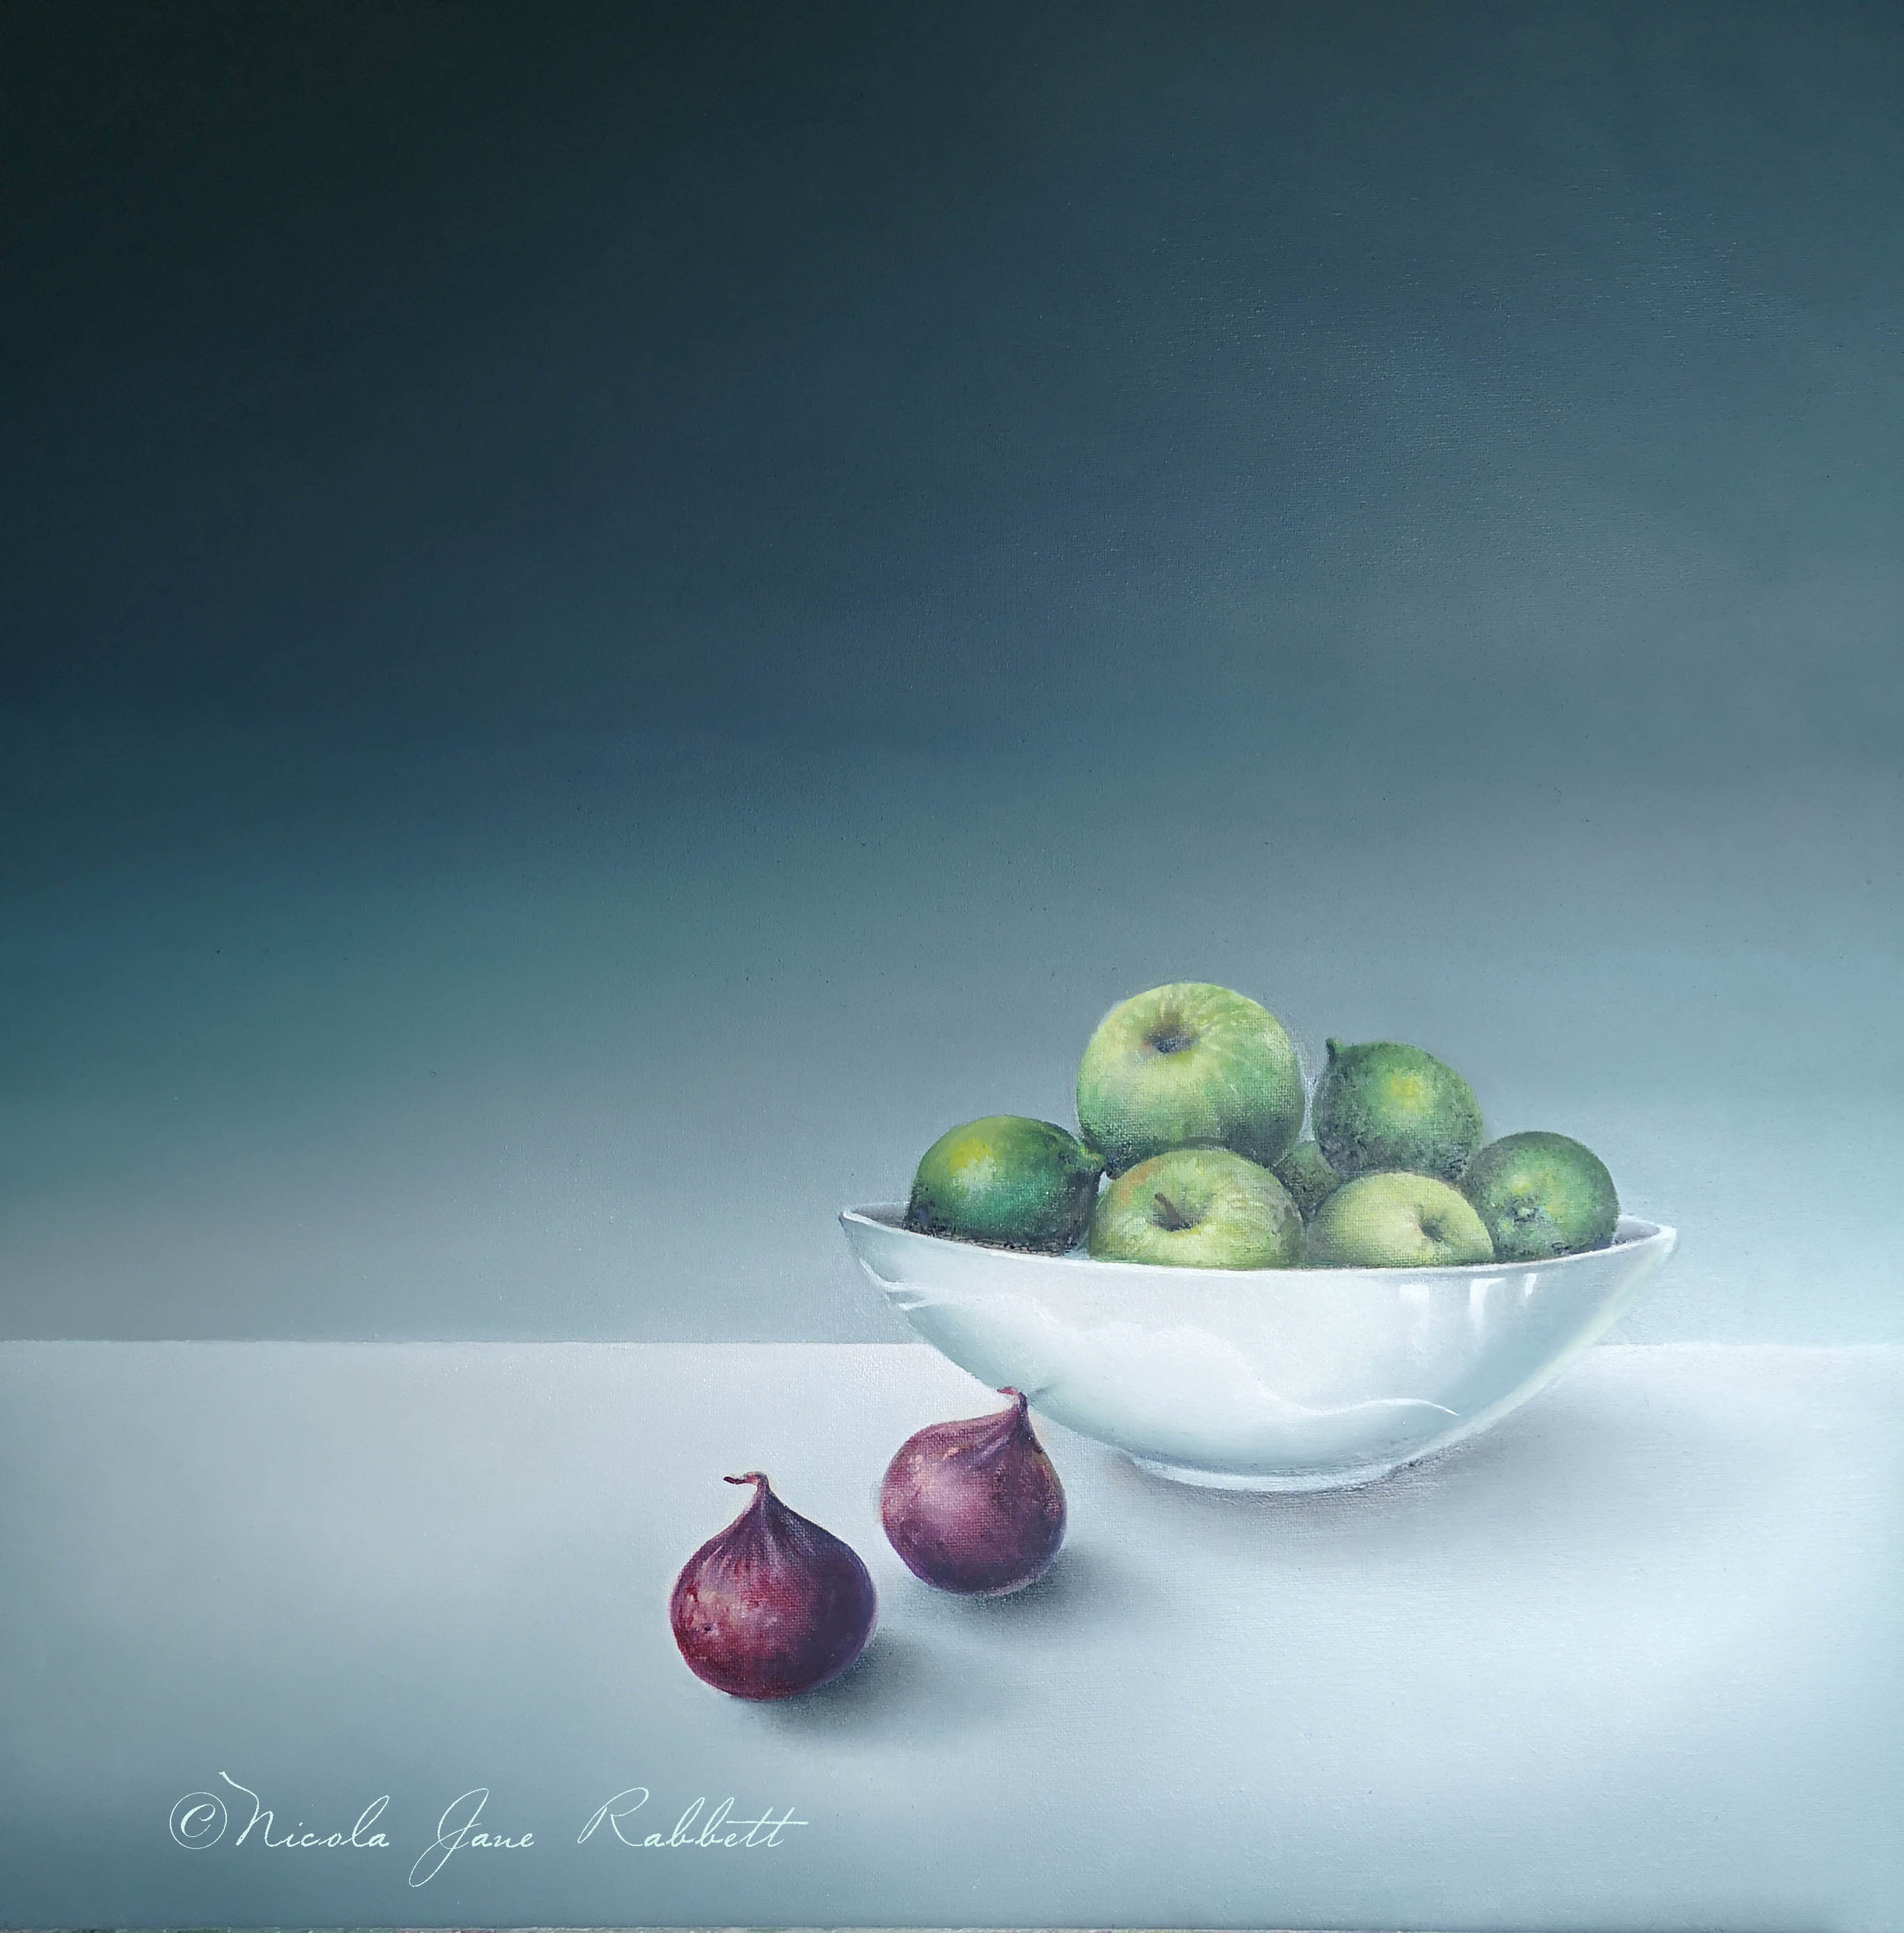 'Apples, Pears & Figs'